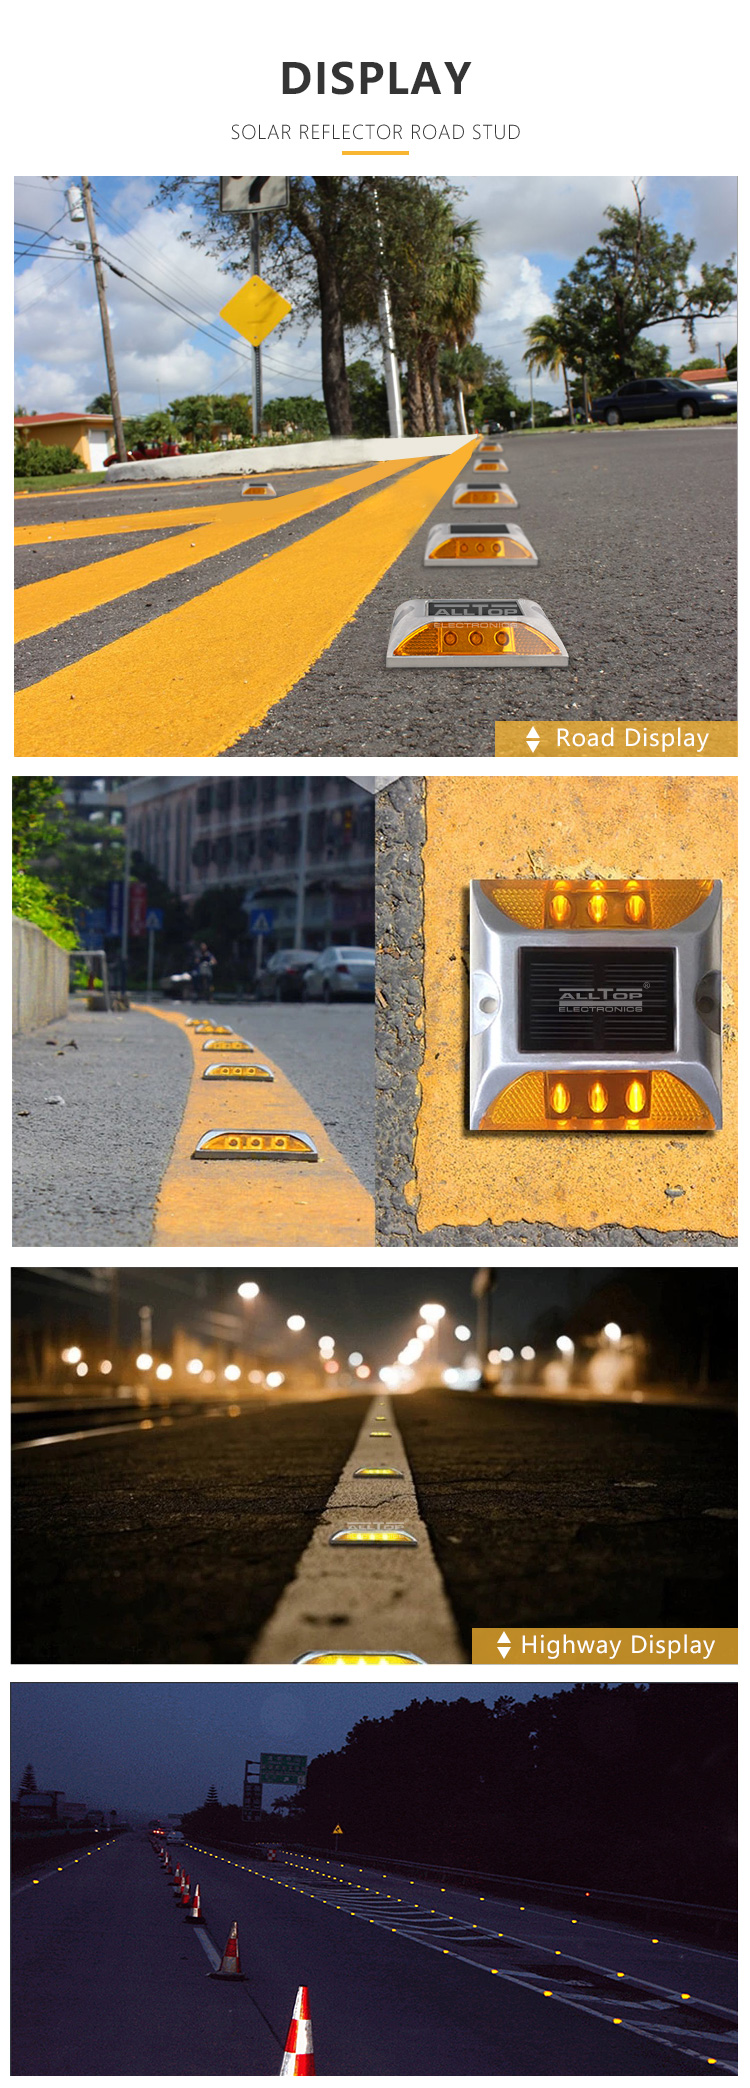 ALLTOP high lumens spike light outdoor waterproof solar reflector road strud led traffic light